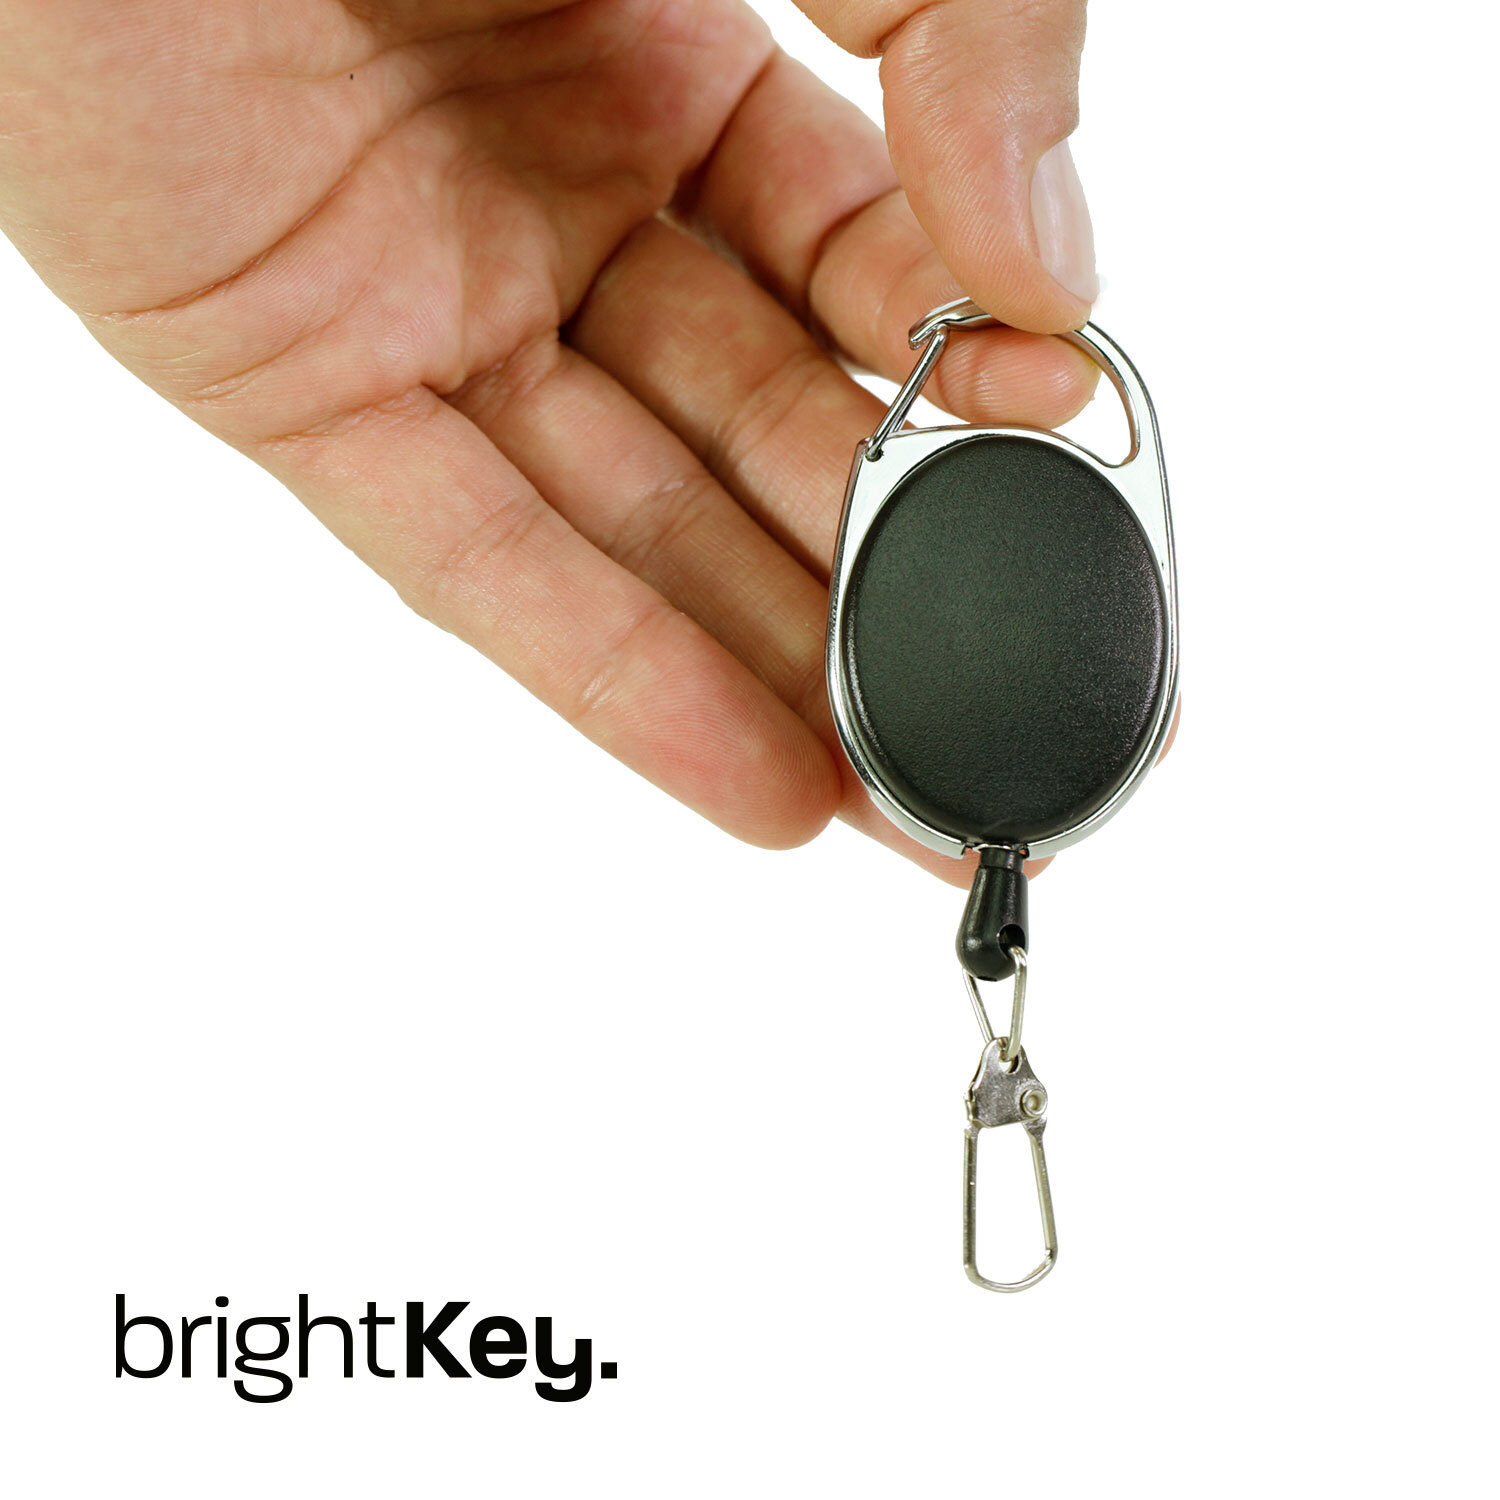 No Touch Multipurpose Keychain Hand Tool Contactless EDC Button Pusher to Keep Hands Clean Gninatgo 2 Packs Clean Key Door Opener Tool